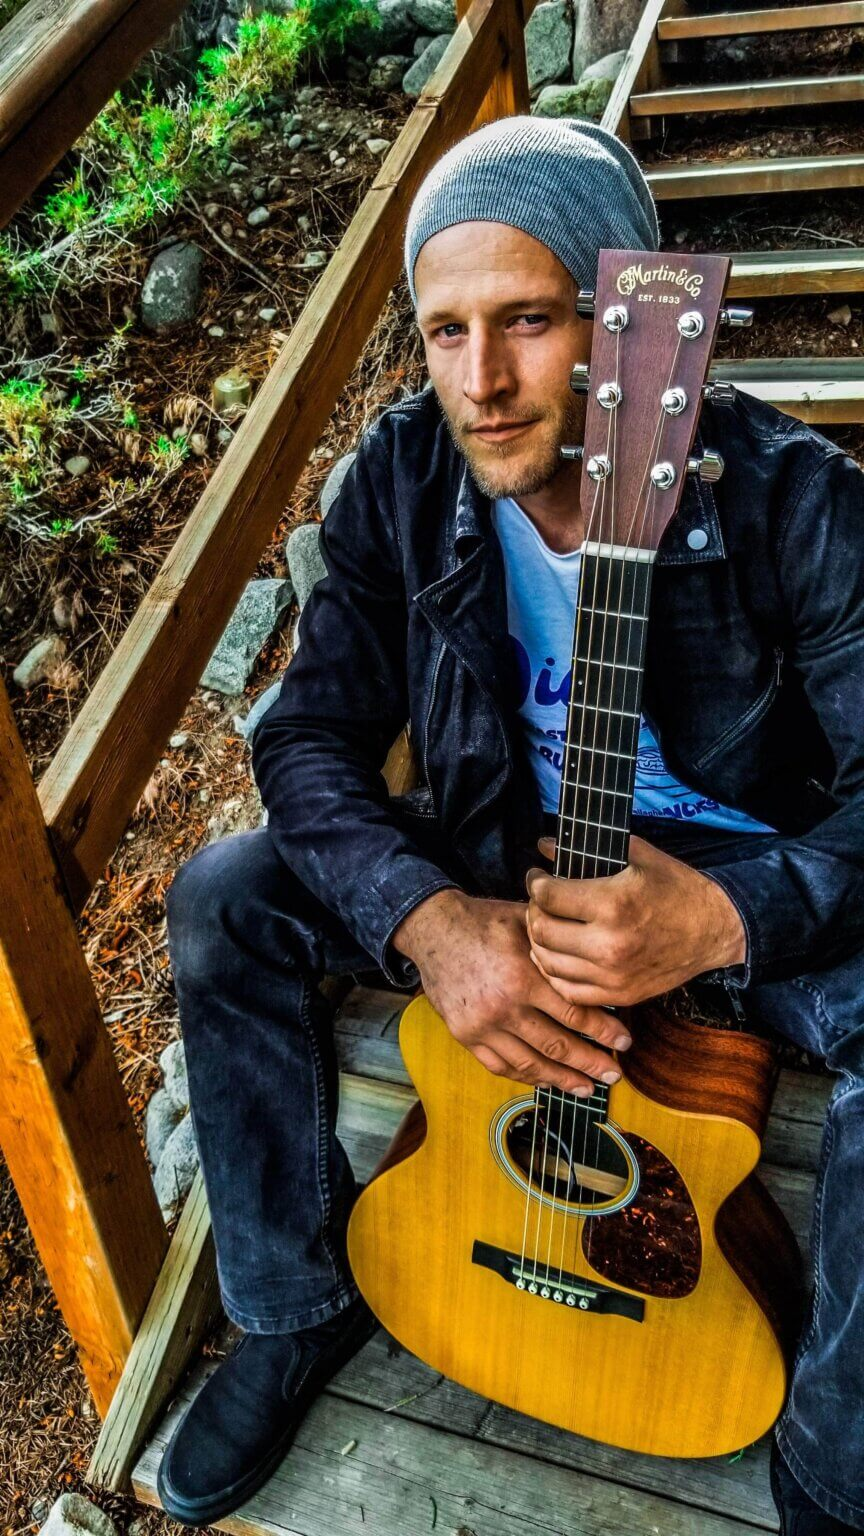 Interview with ultrviolence: Steven Ovadia chatted with Nate Jespersen about Music, Life, and yes, a bit of gardening